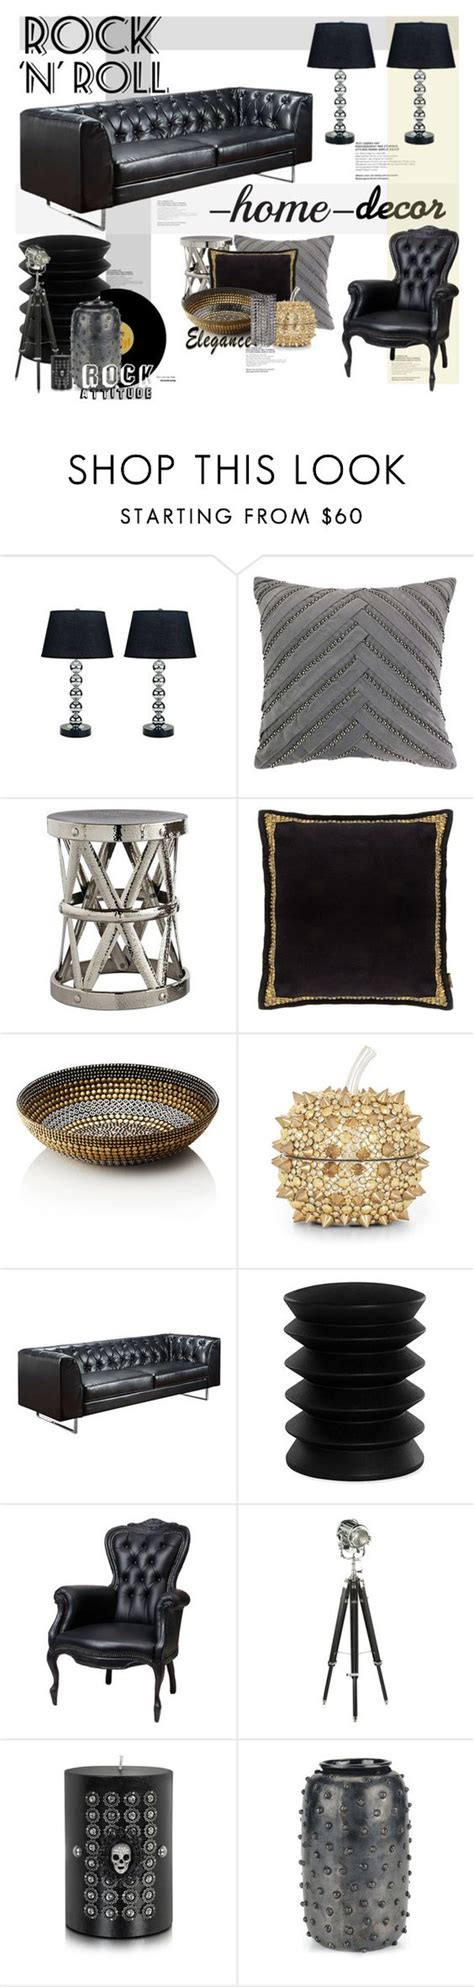 polyvore home decor rock n roll rock n and rocks on pinterest